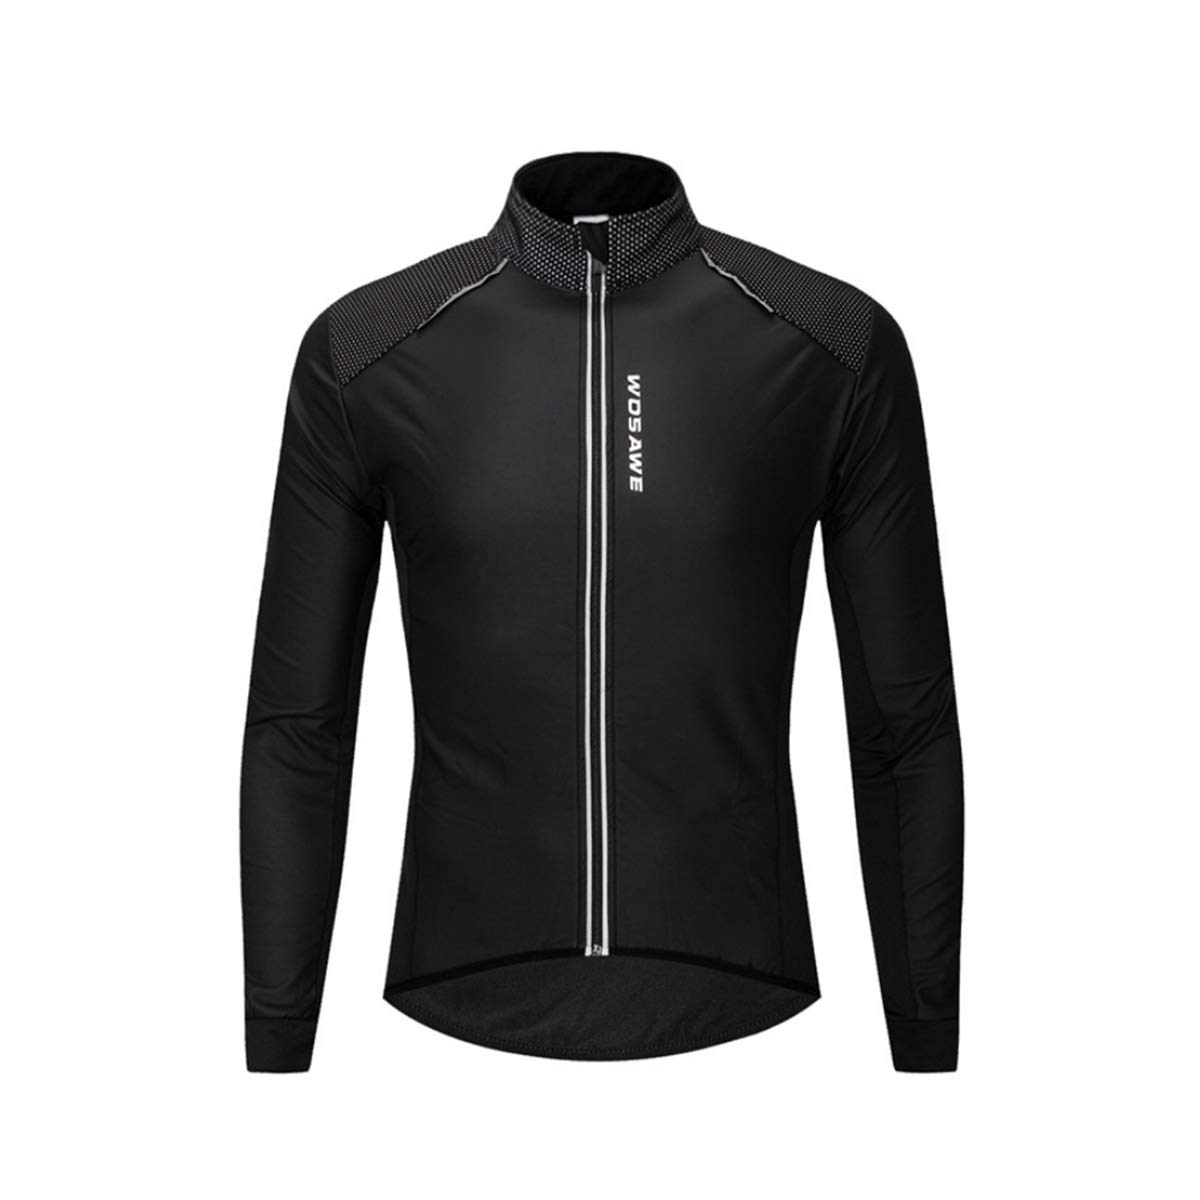 SKRCOOL Giacca Ciclismo Impermeabile Ciclismo Termico a Manica Lunga Giacca Invernale in Pile Ciclismo,M